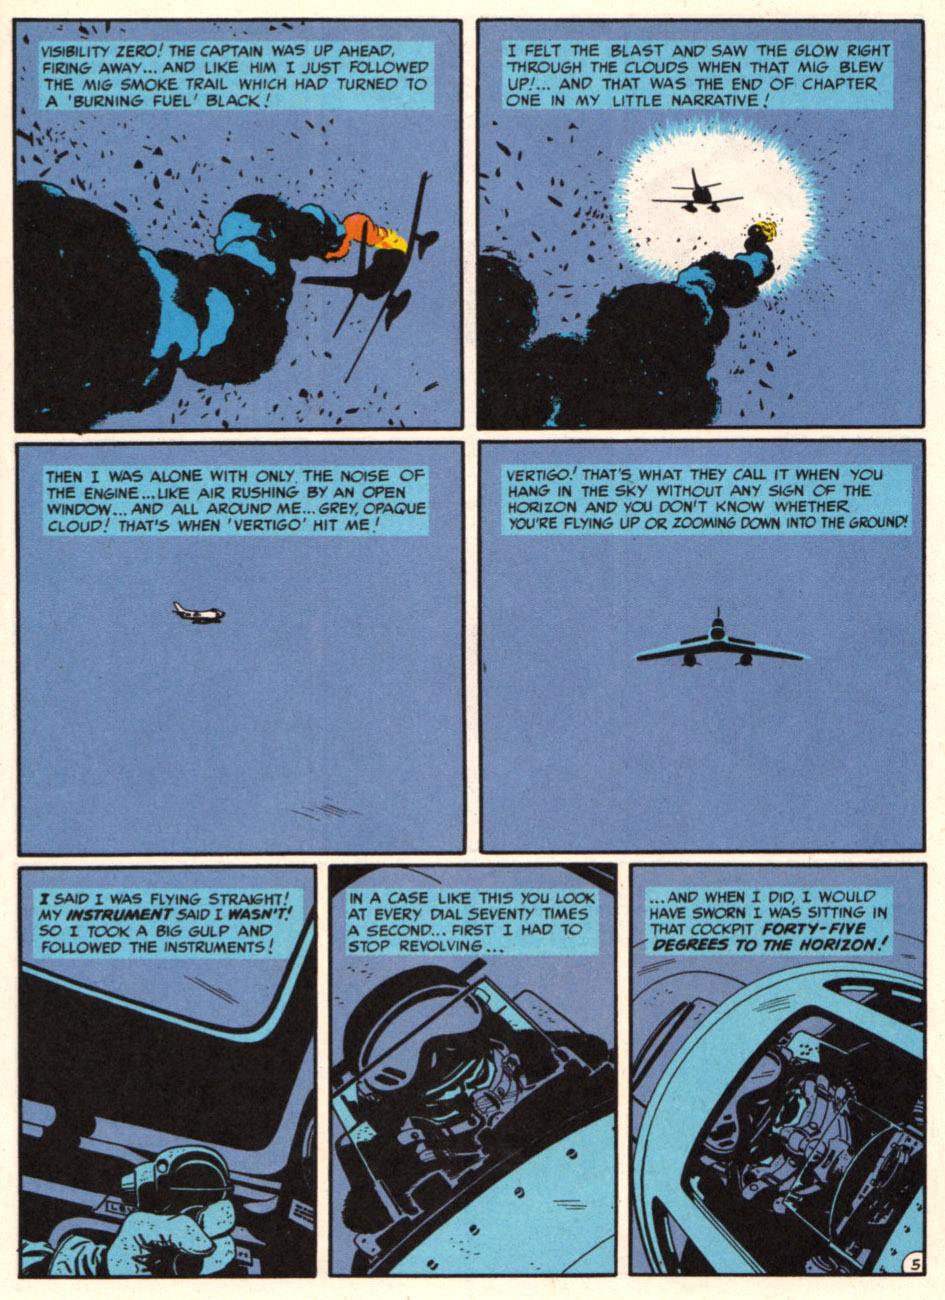 tothlove:  F86 Sabre Jet - Harvey Kurtzman and Alex Toth page 5